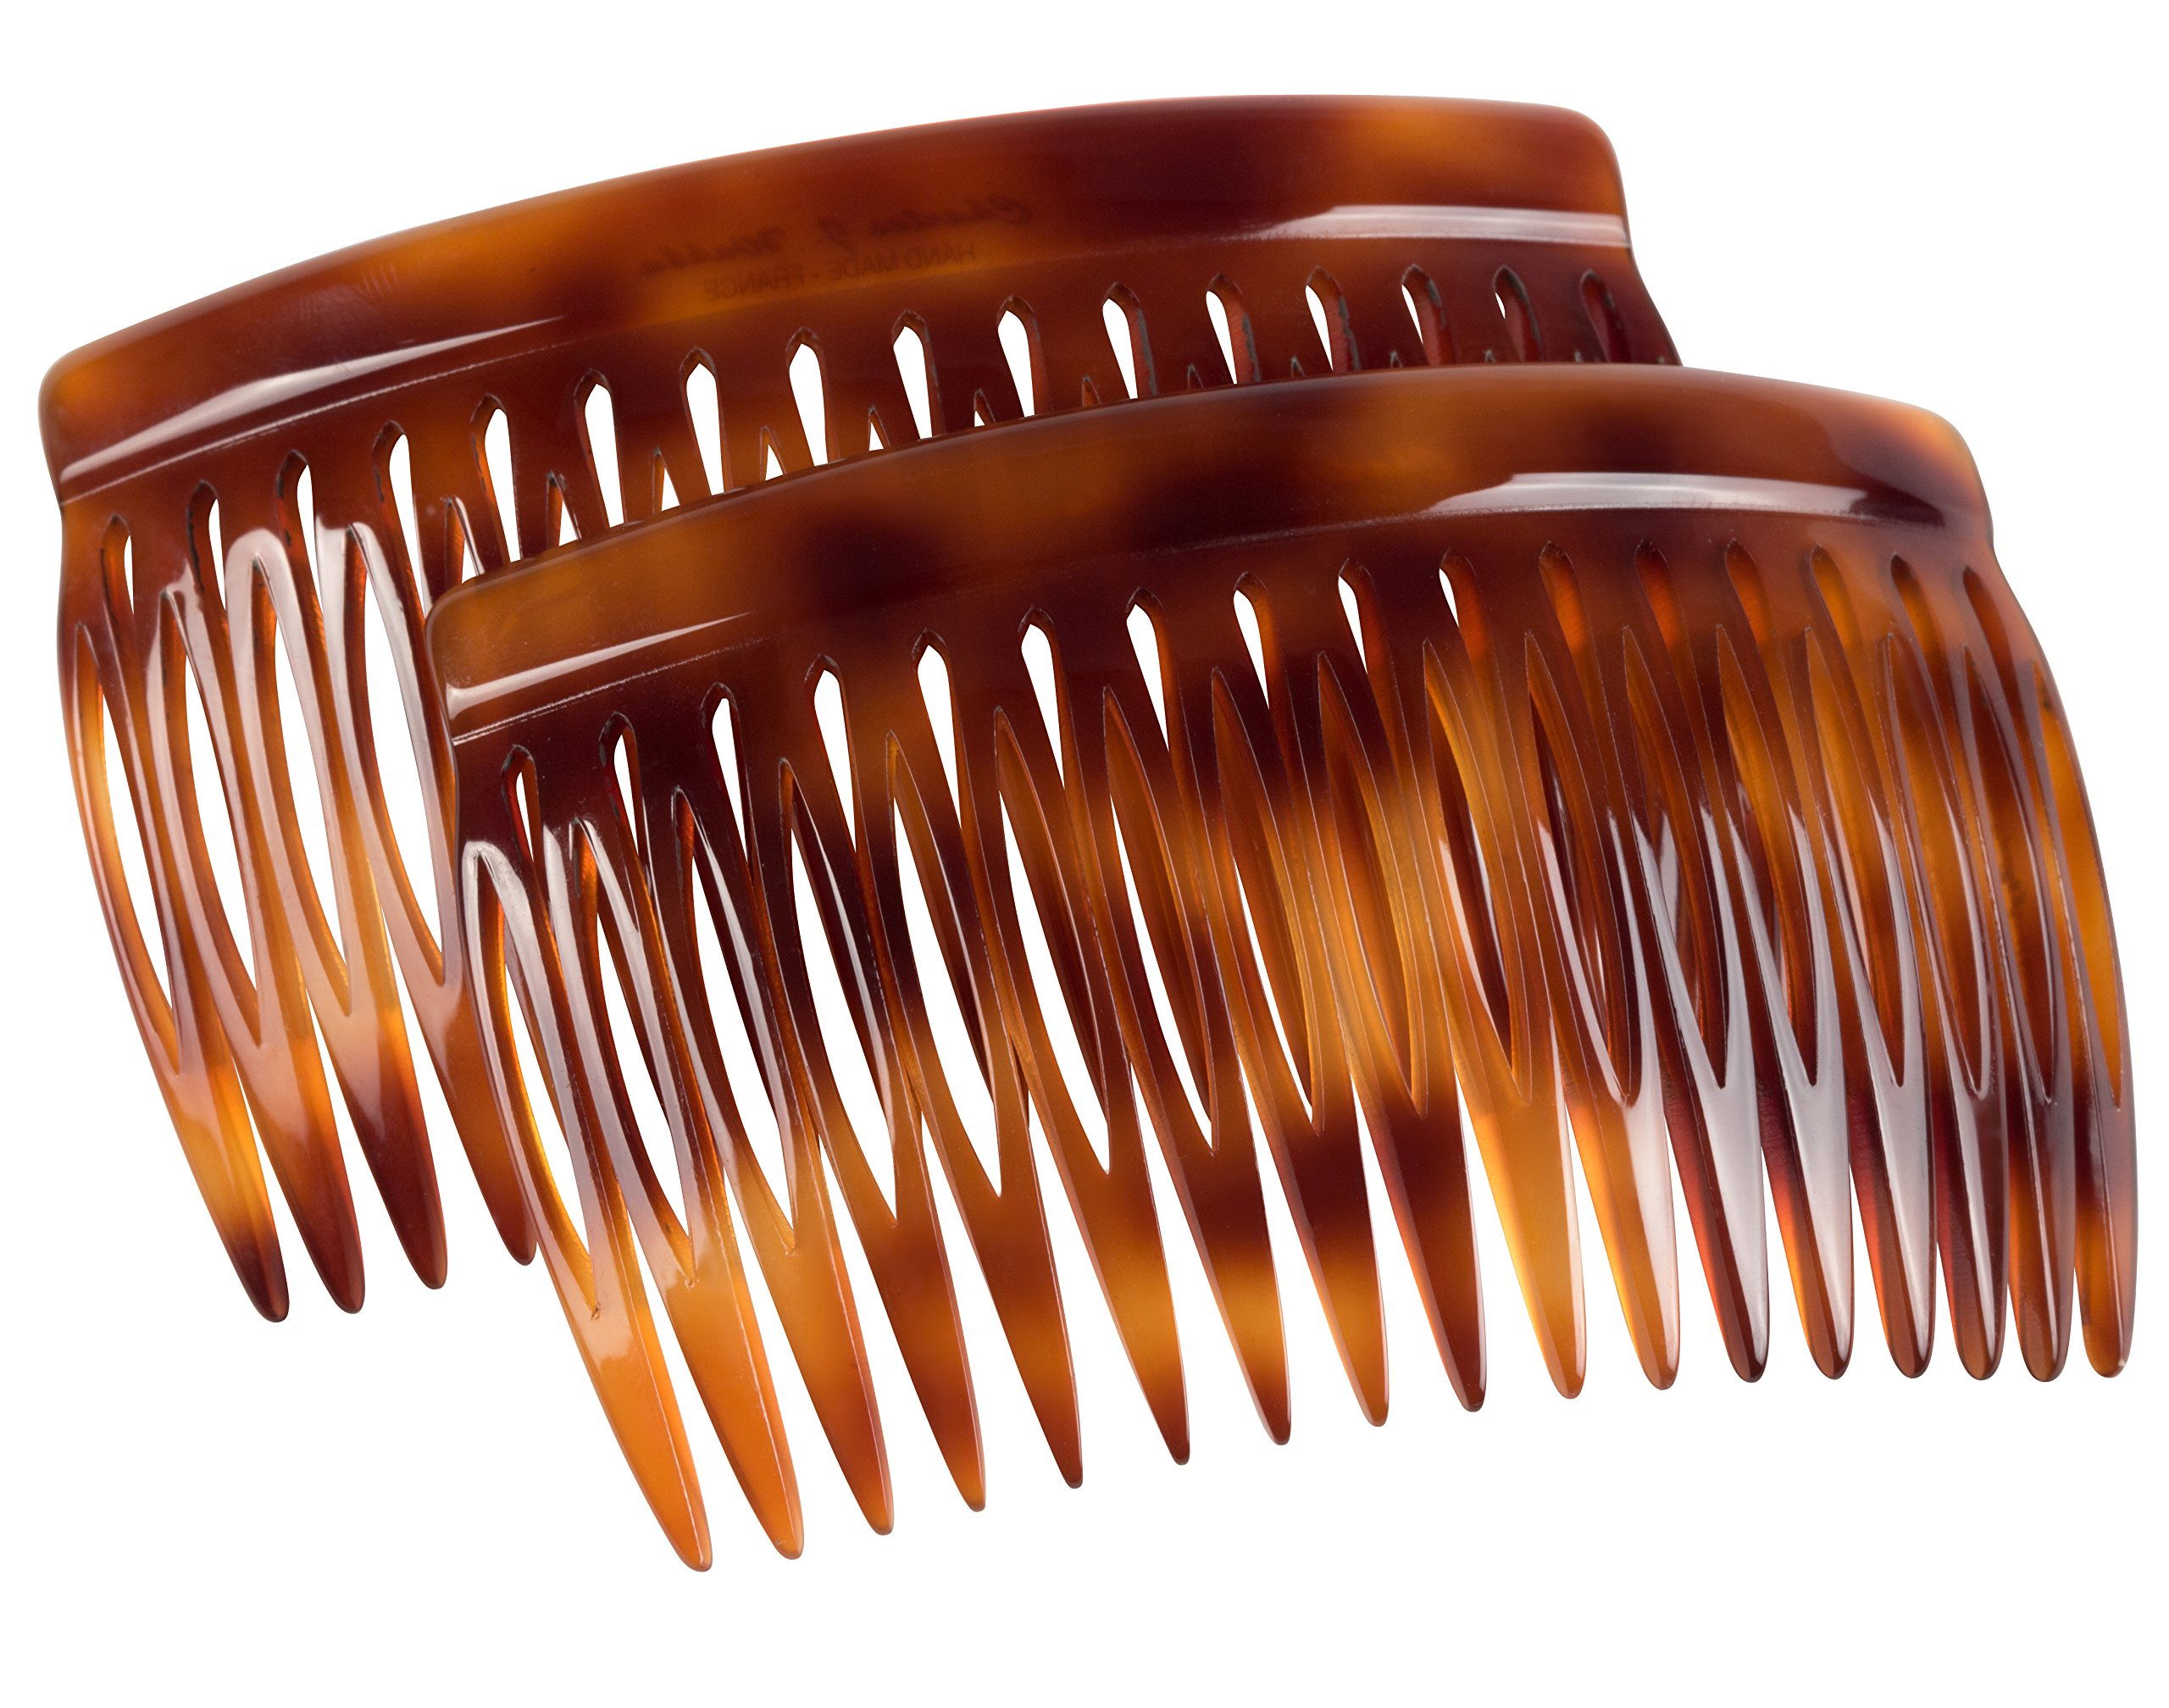 Charles J. Wahba Medium French Side Comb Pairs - Tortoise